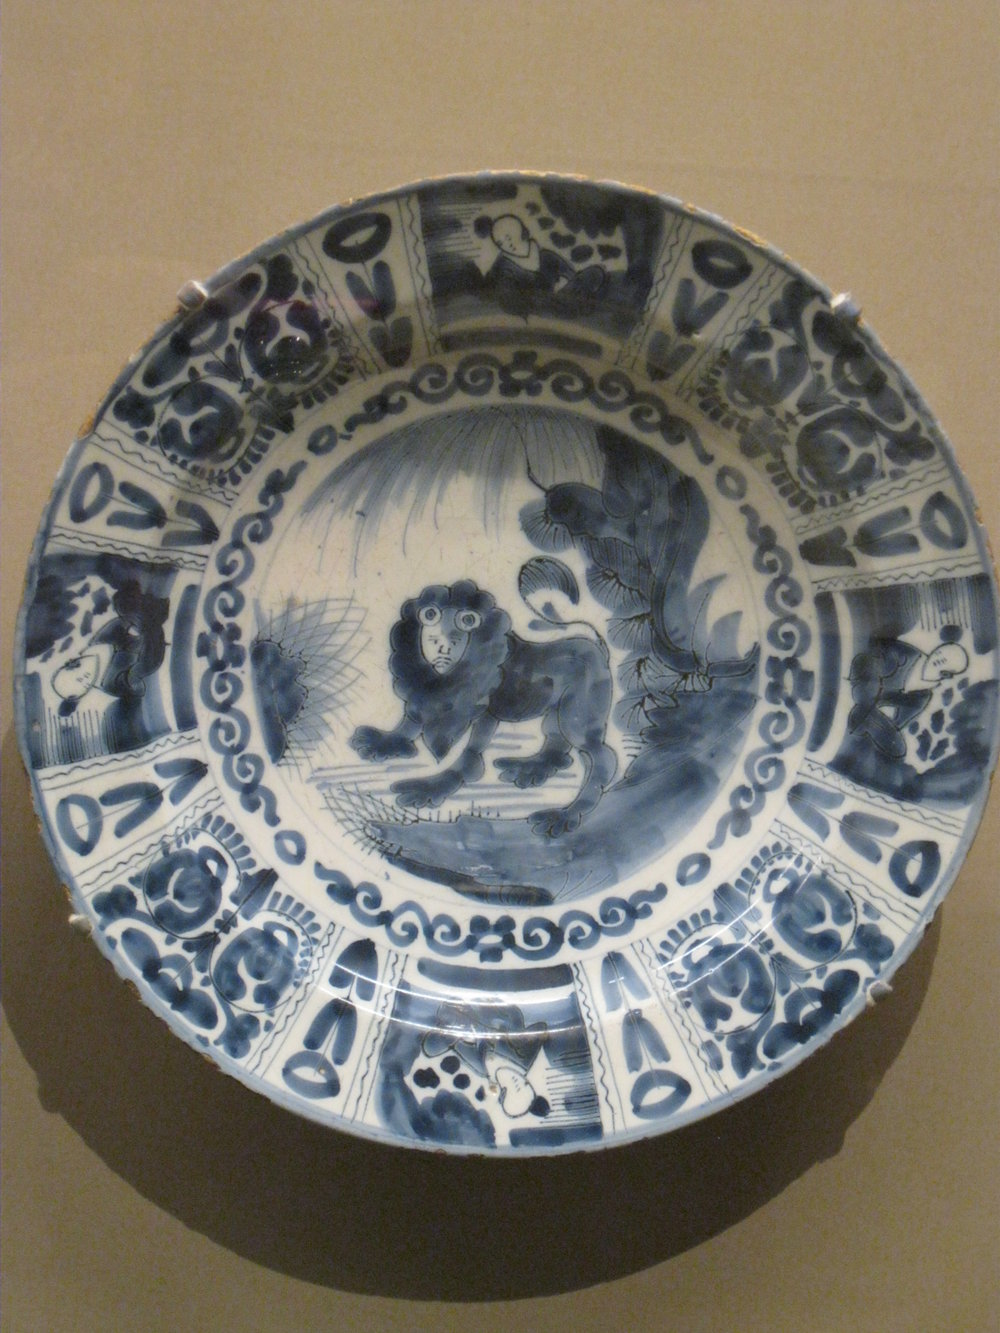 Delftware plate, made in the Netherlands, 1680-1700